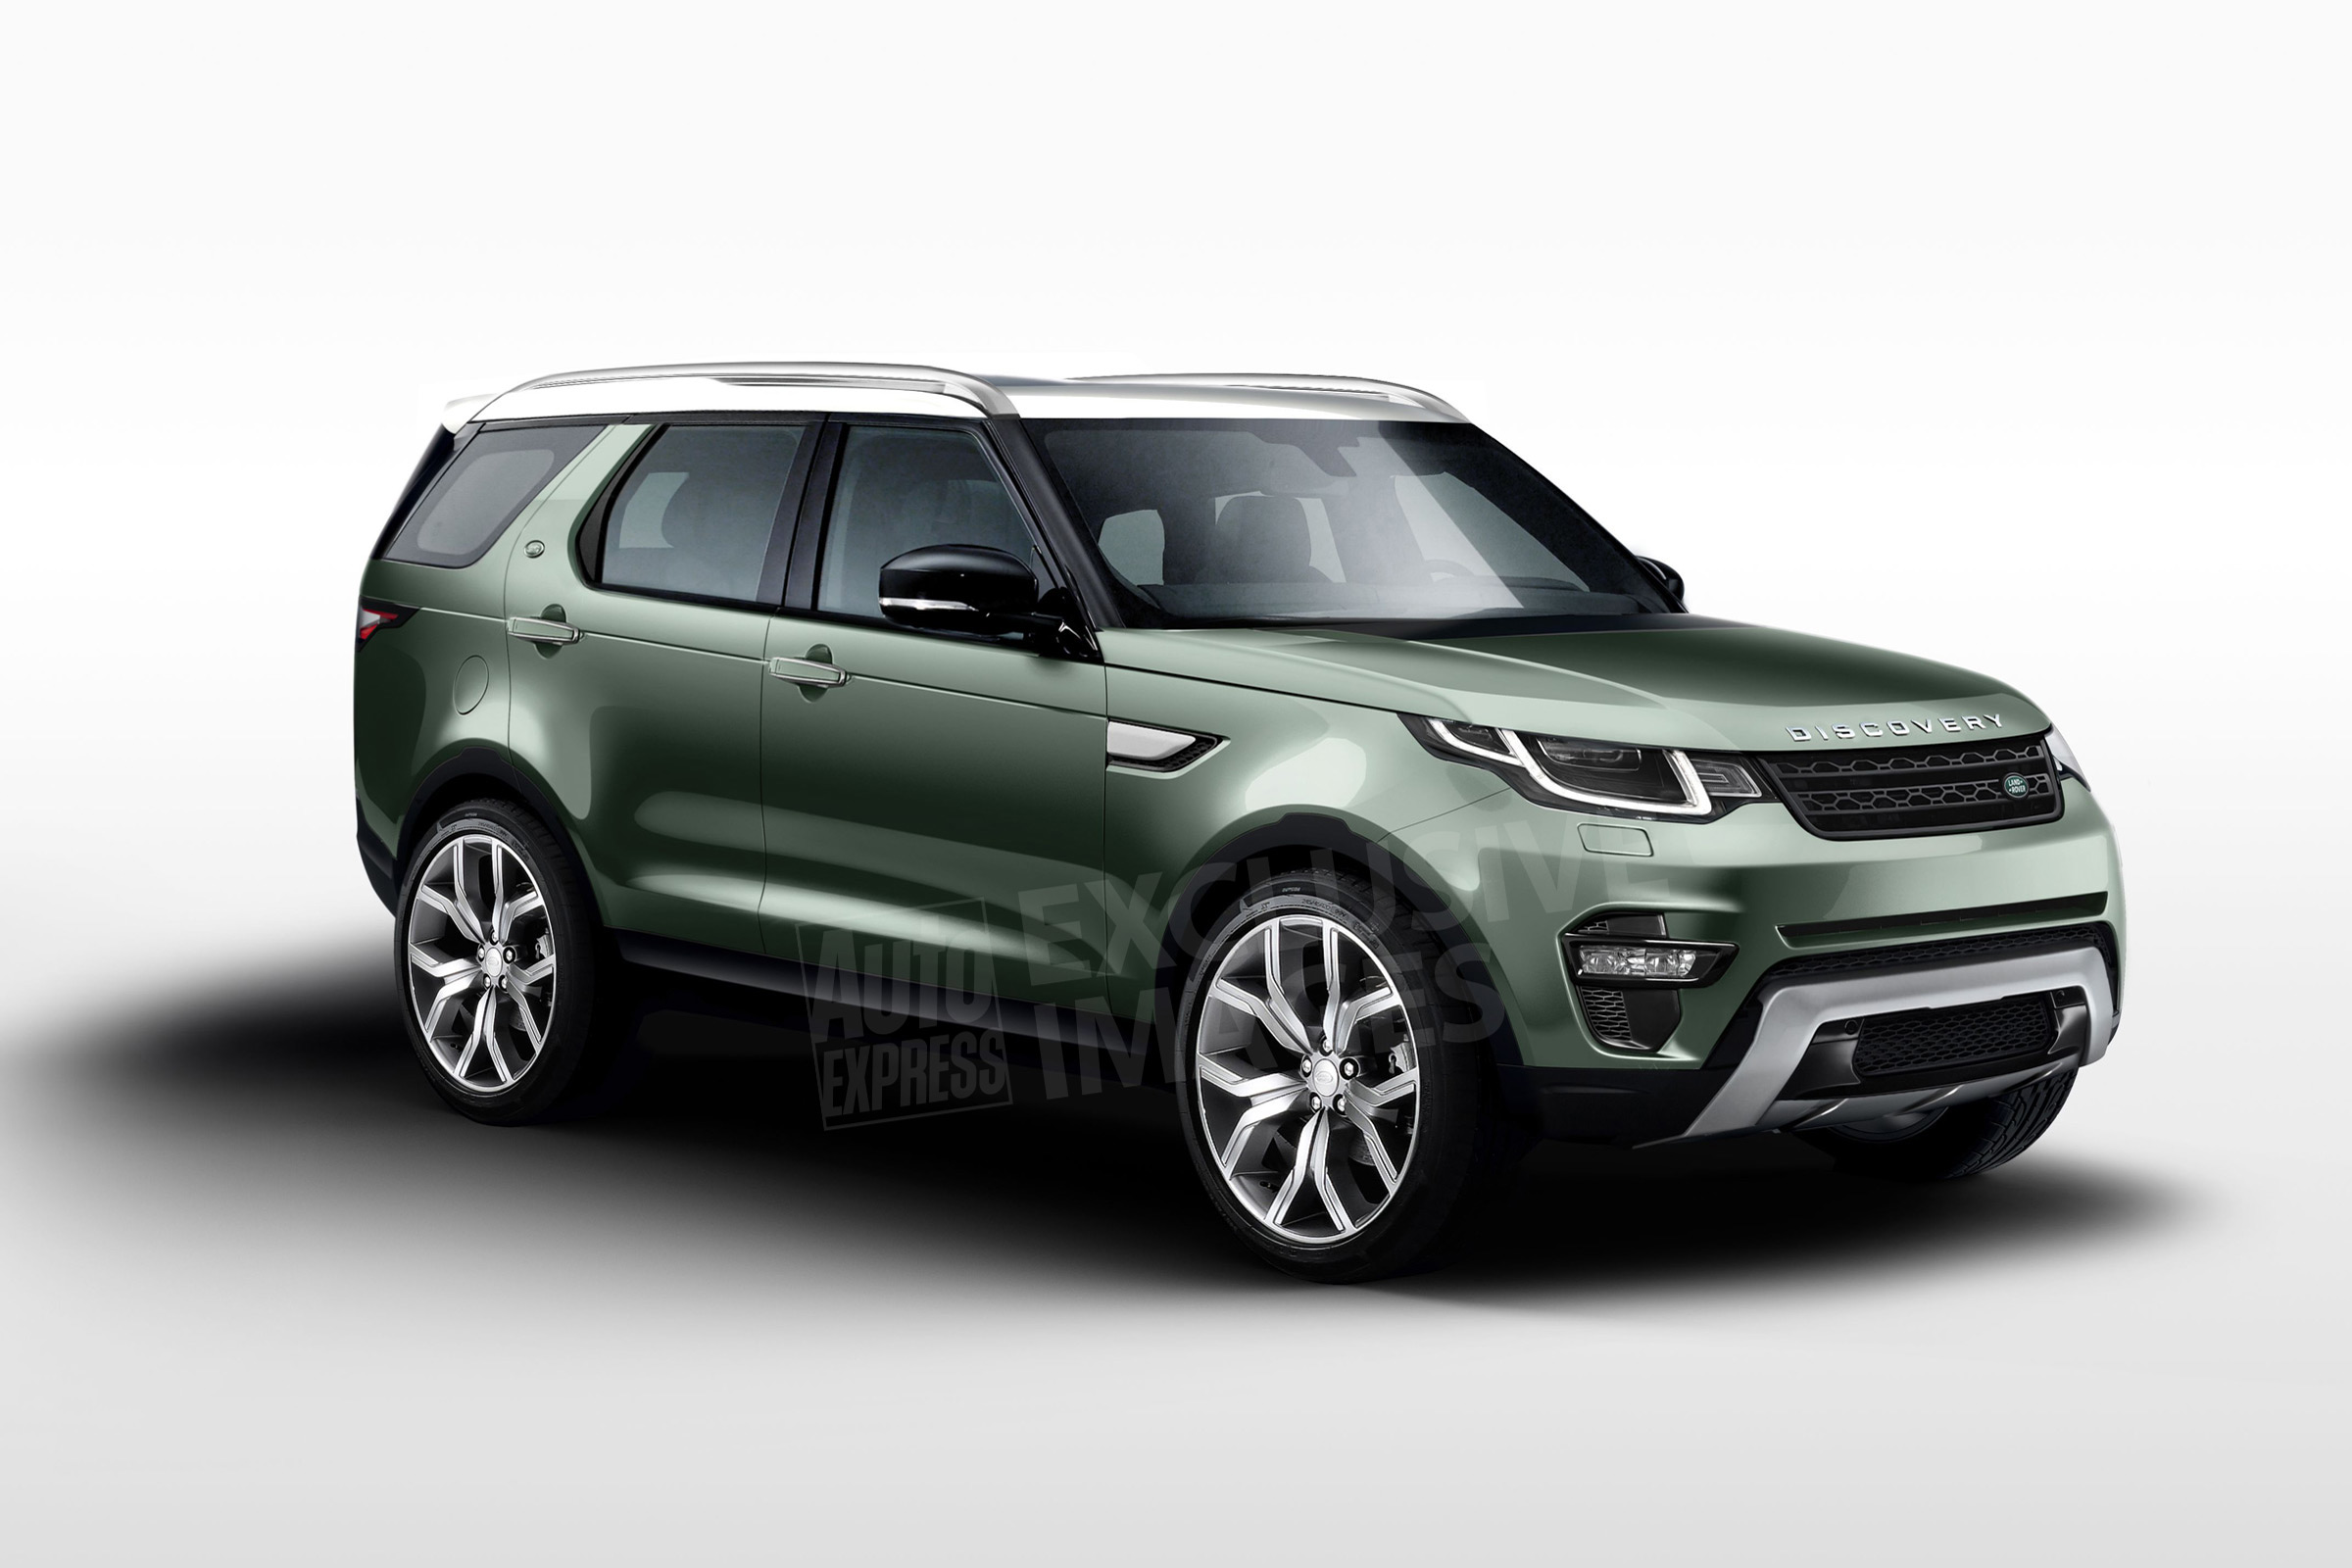 2017 Land Rover Discovery Vision Concept Photo 2